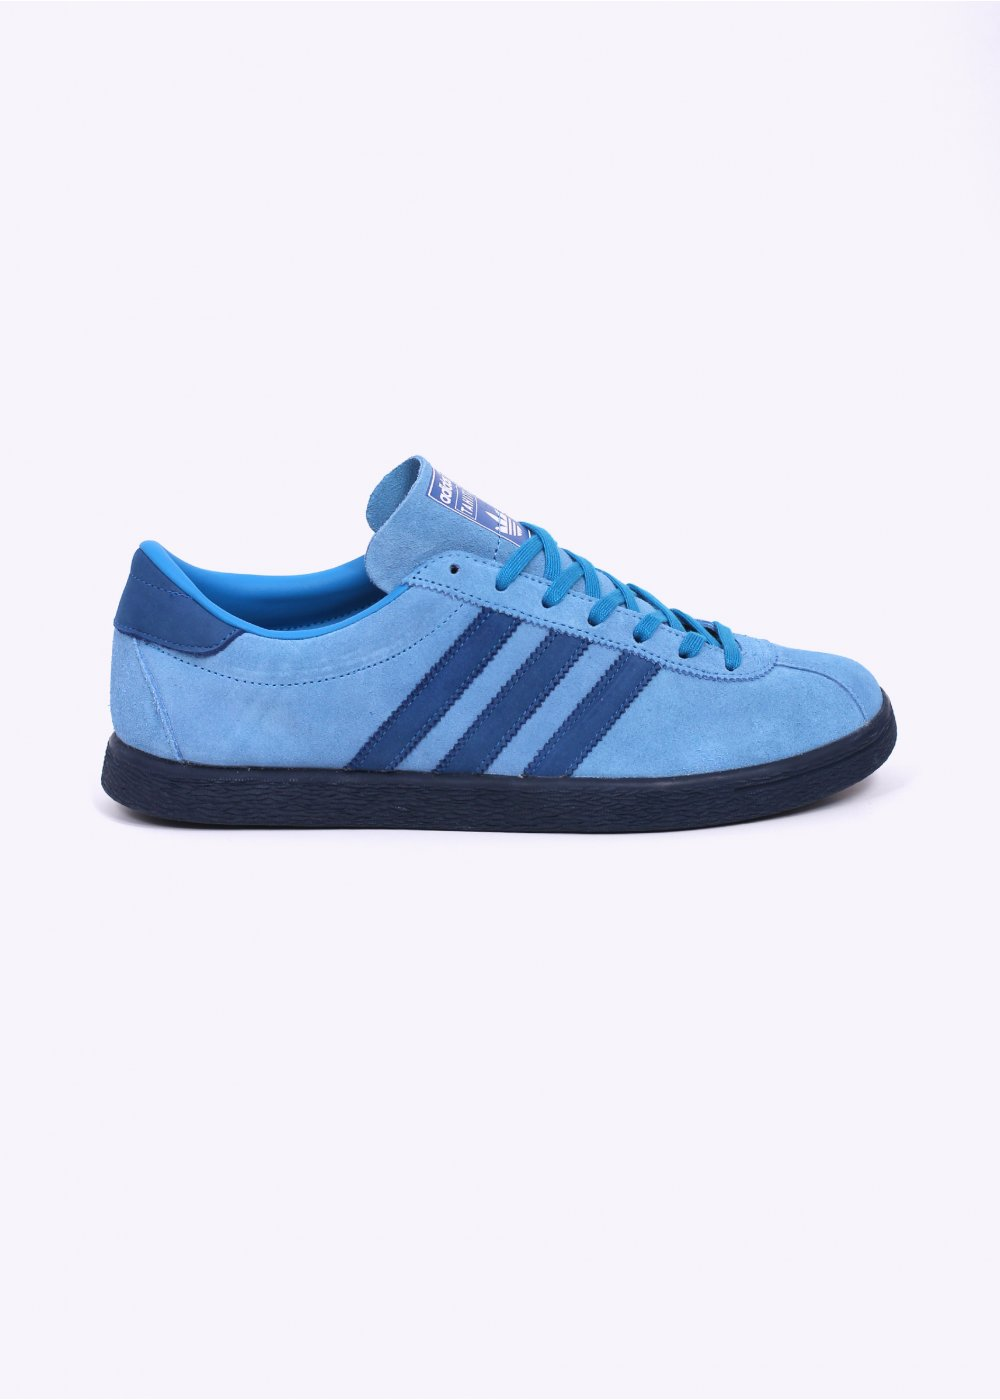 new style da2e4 04173 Tahiti Trainers - Light Blue   Blue   Collegiate Navy